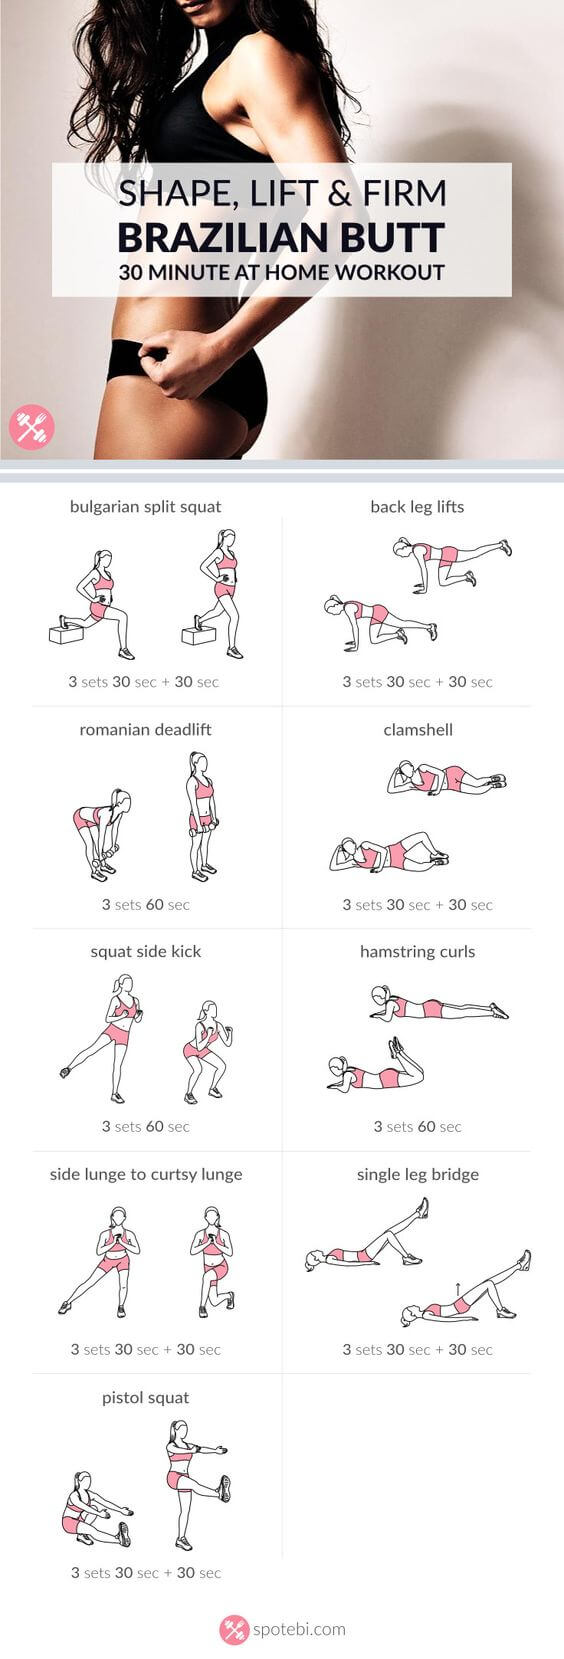 7 Booty Workouts to Lift & Shape, lift and shape, booty workout